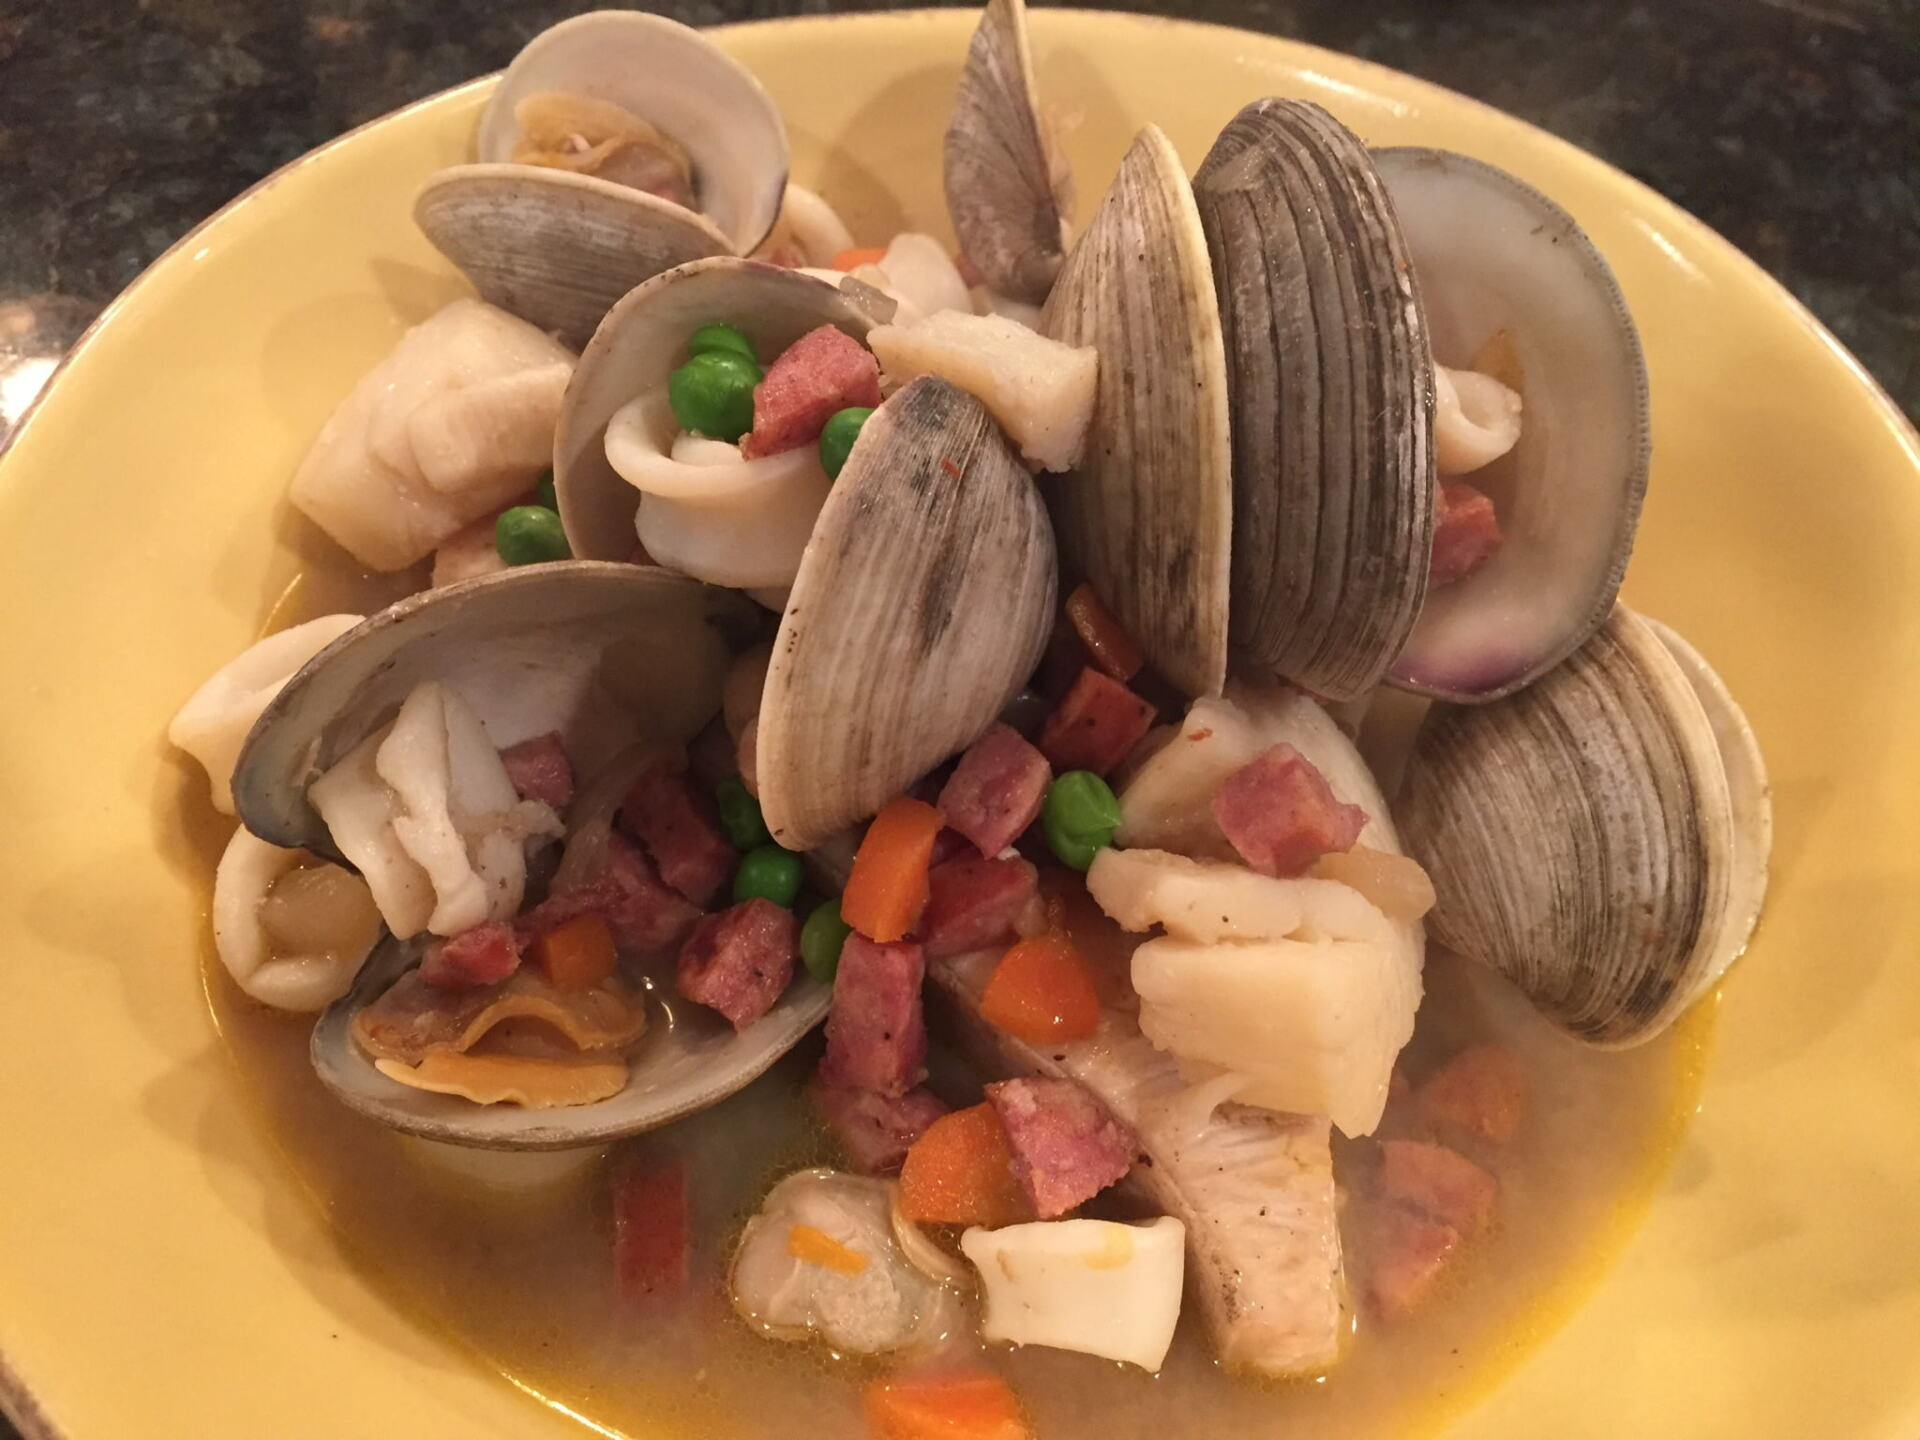 Seafood and broth in a bowl